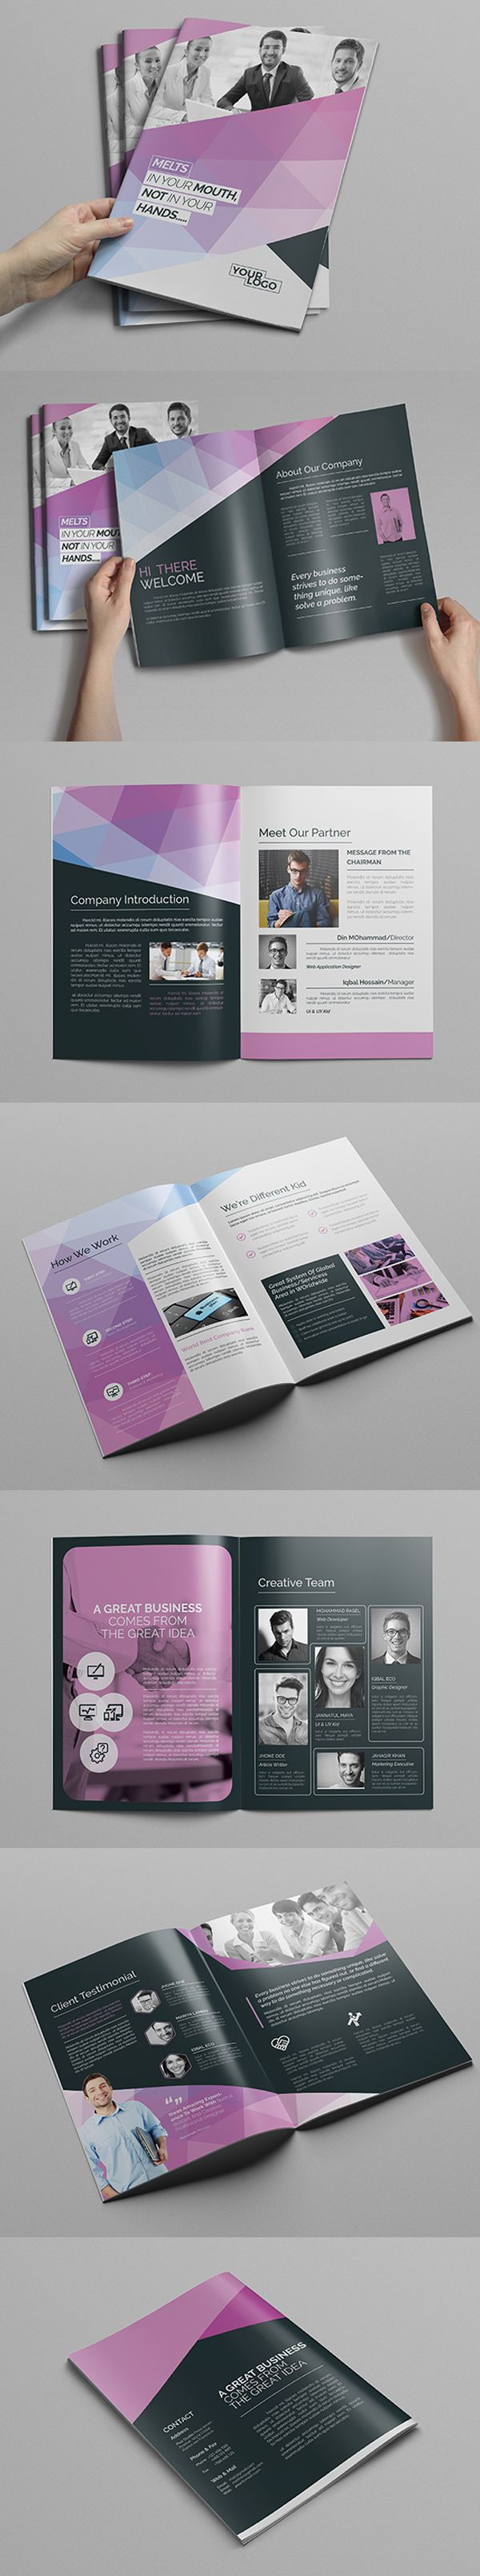 A4 Abstract Brochure Design Template #booklet #brochuredesign #brochuretemplates…